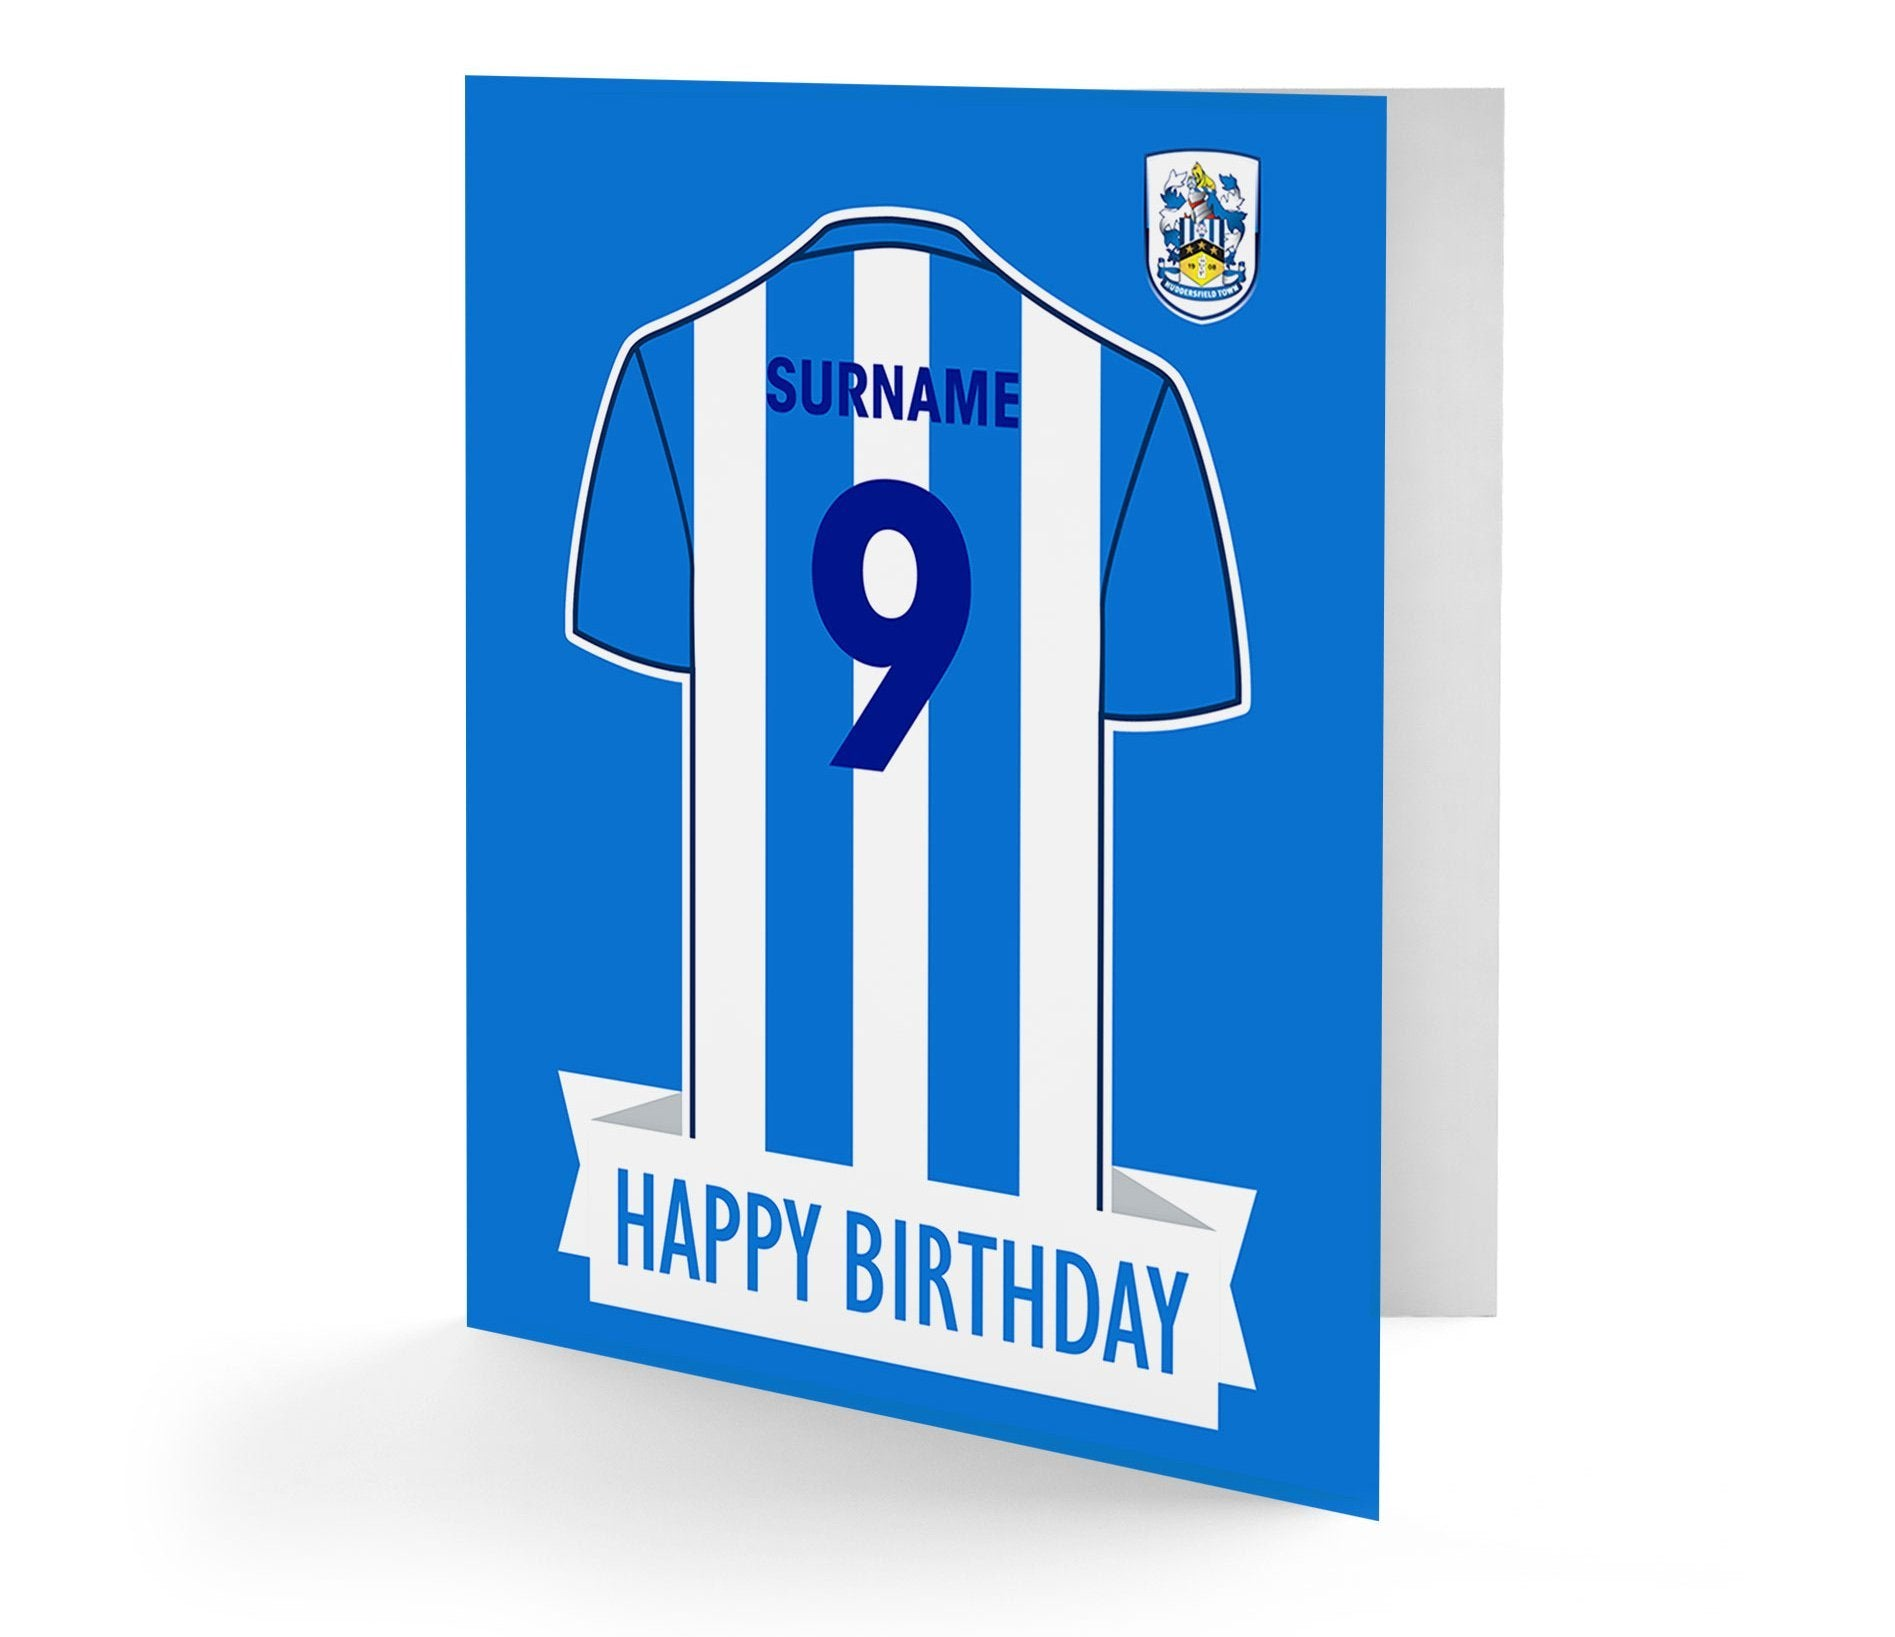 Personalised Huddersfield Birthday Card, Gift Giving by Glamorous Gifts